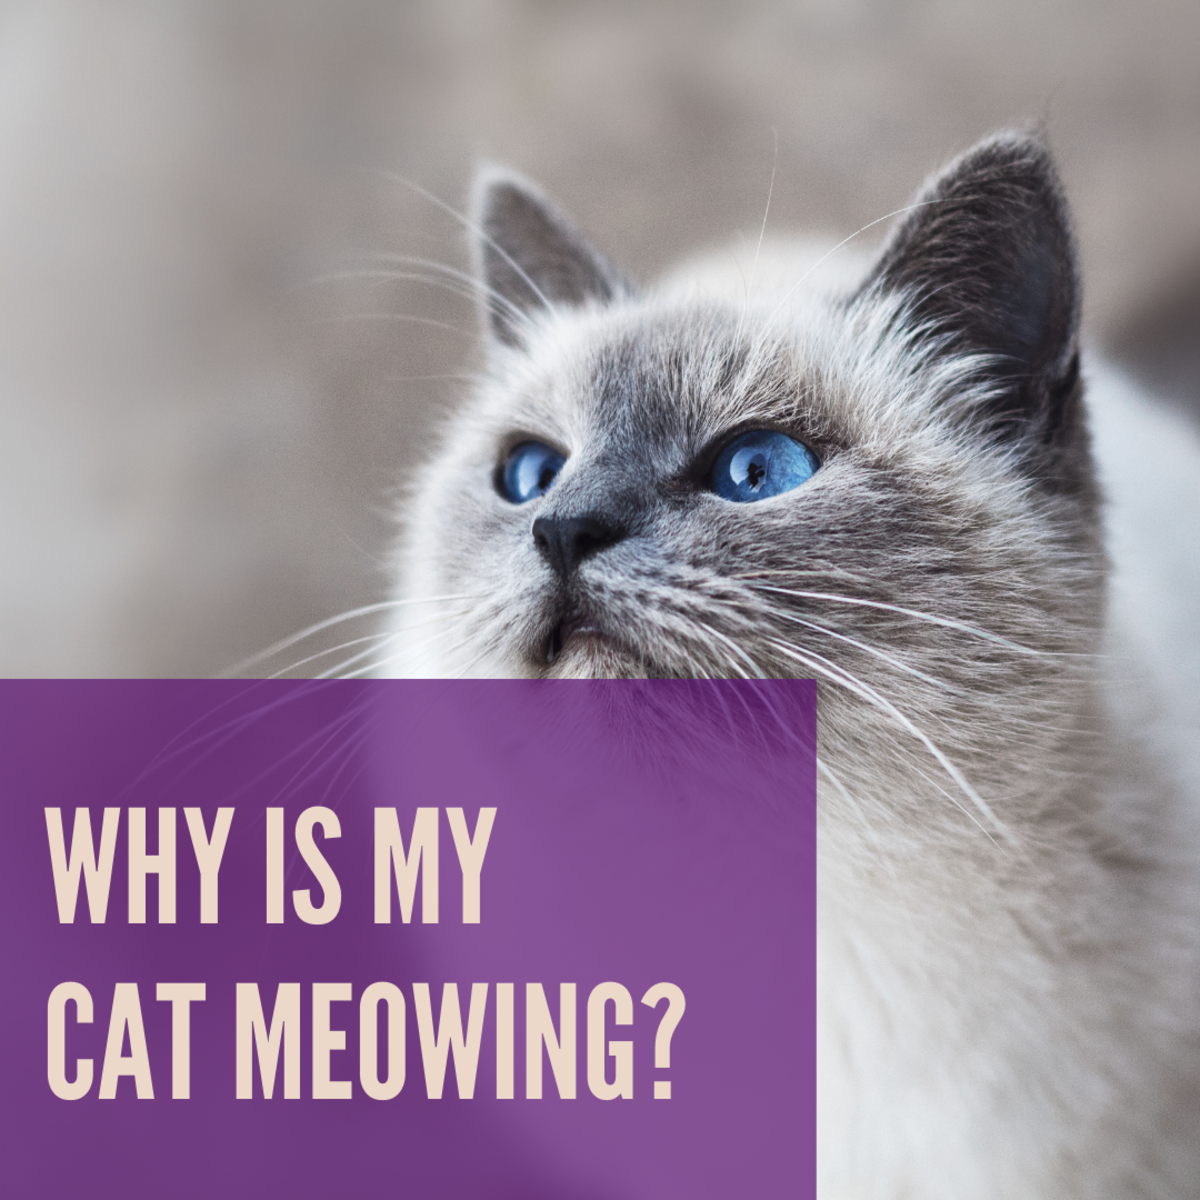 There are various reasons a cat might be meowing more frequently.